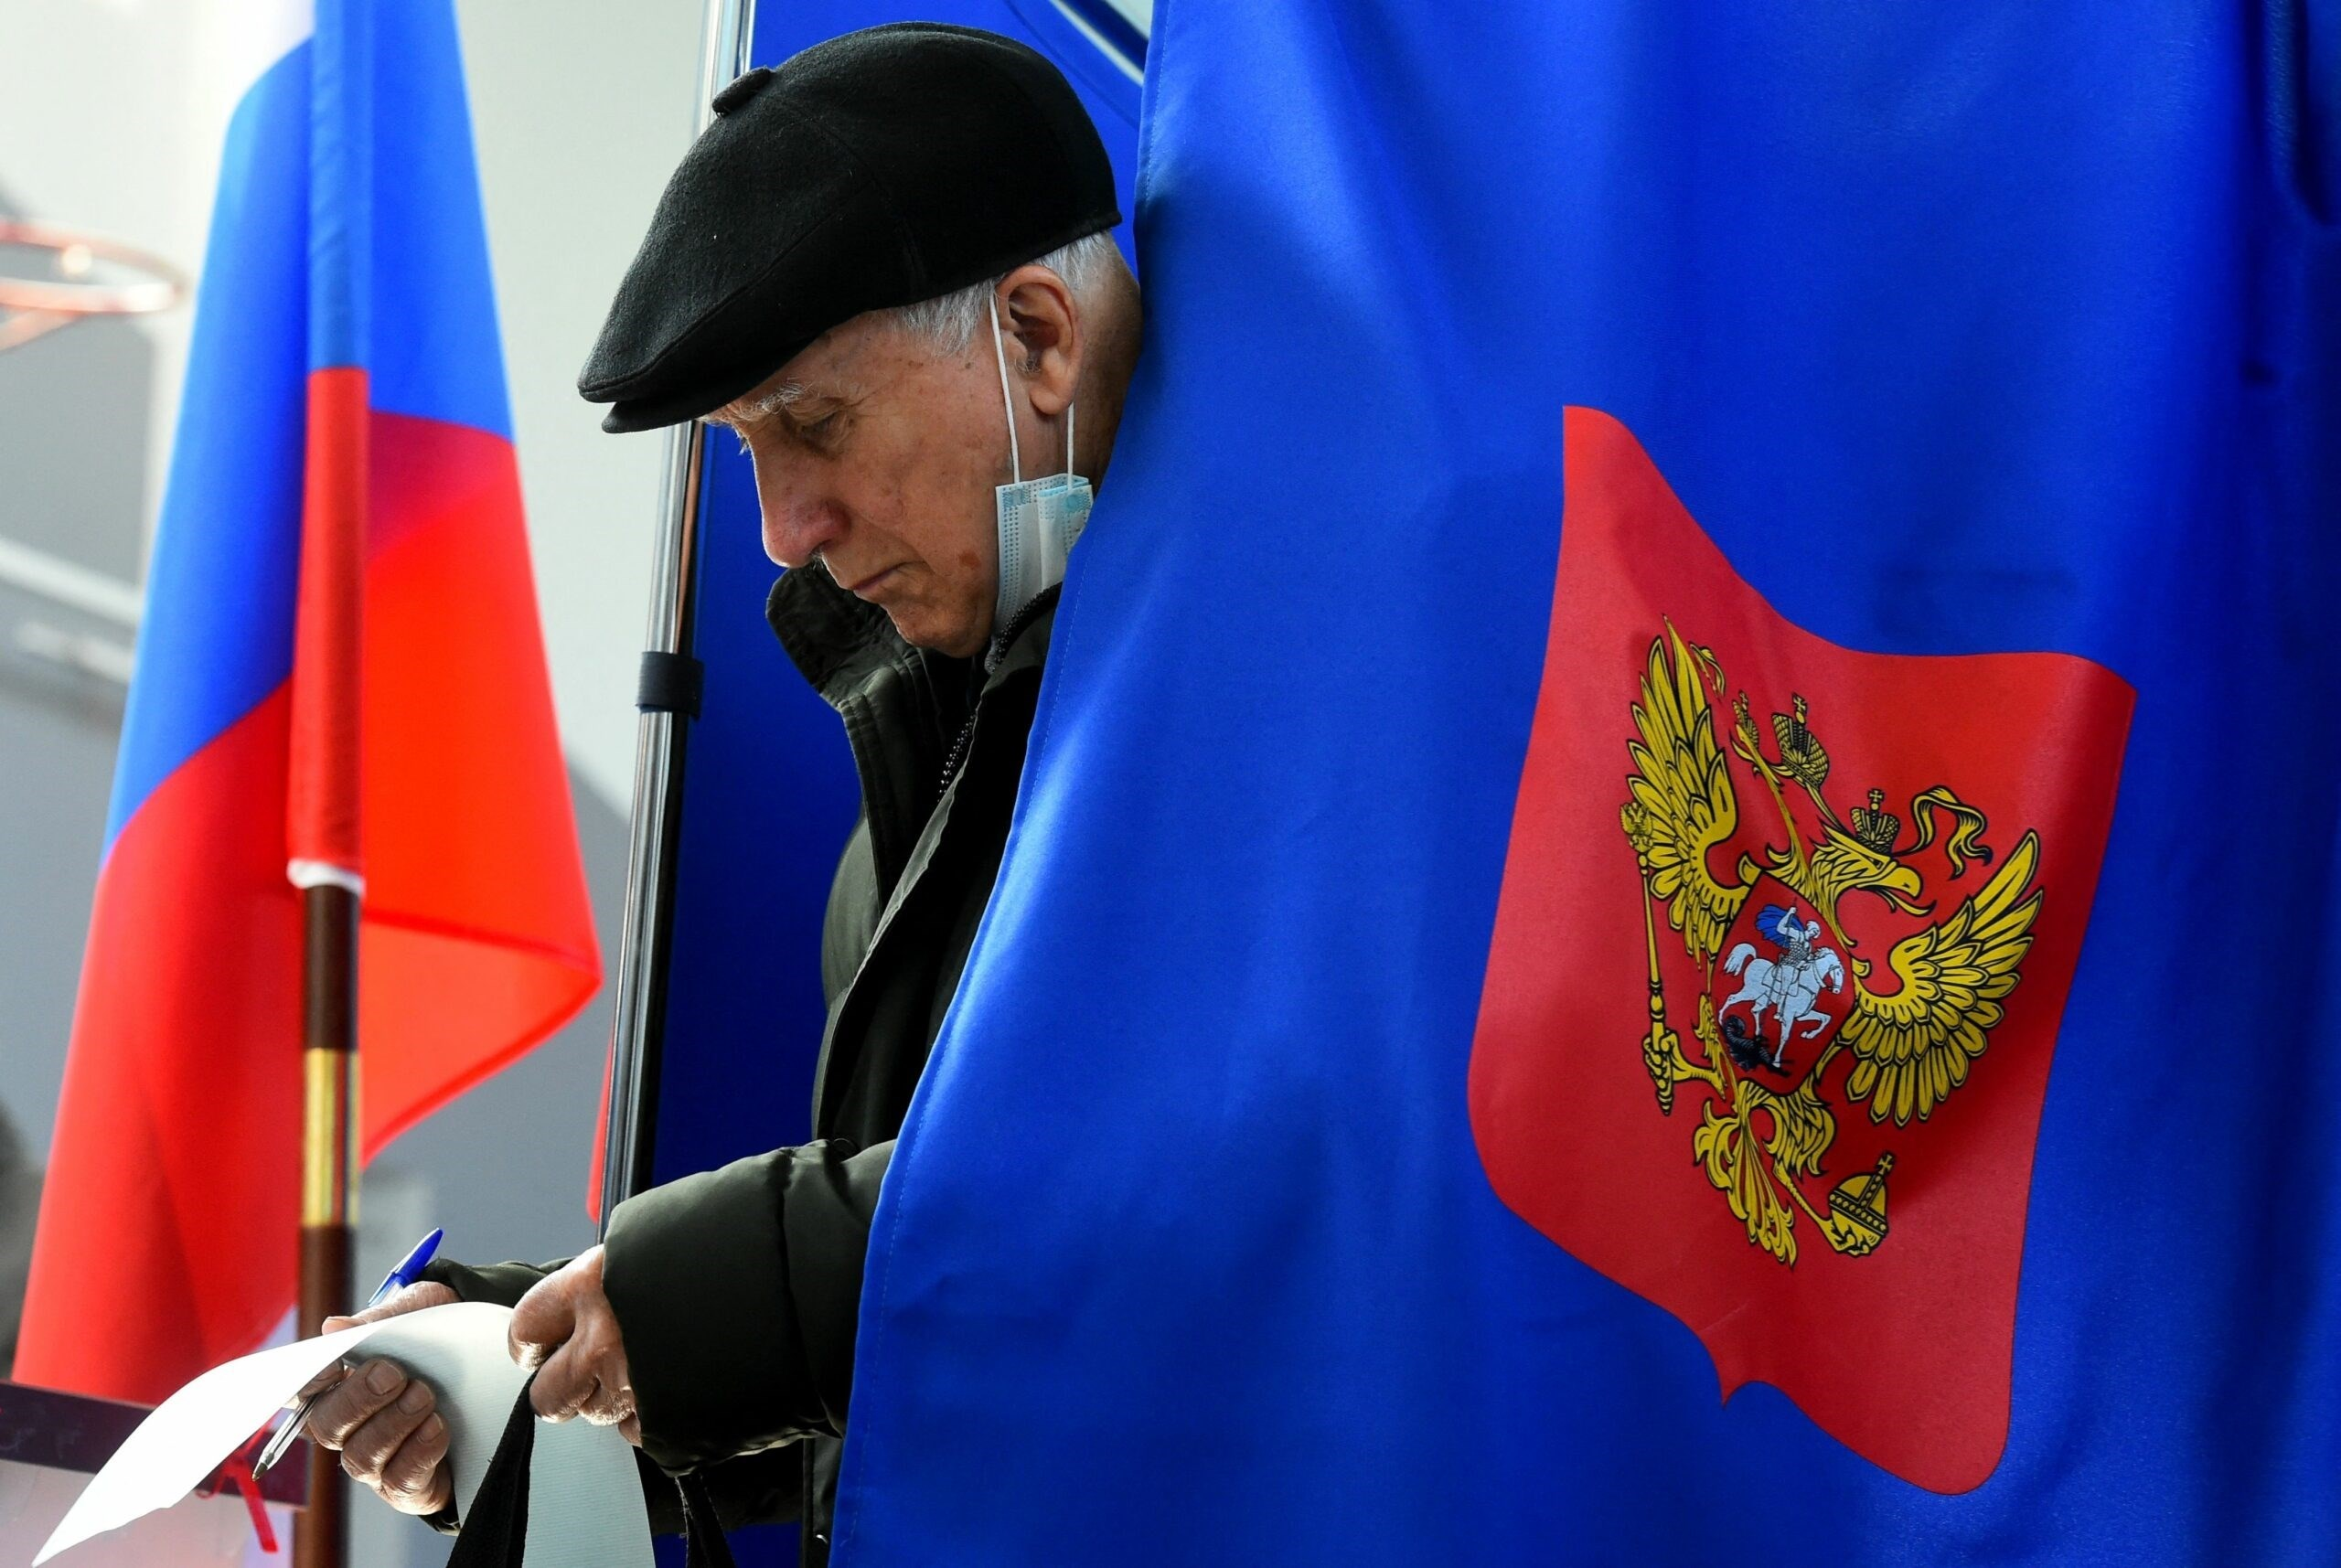 Preliminary results show that Russia's ruling party has won the parliamentary elections.